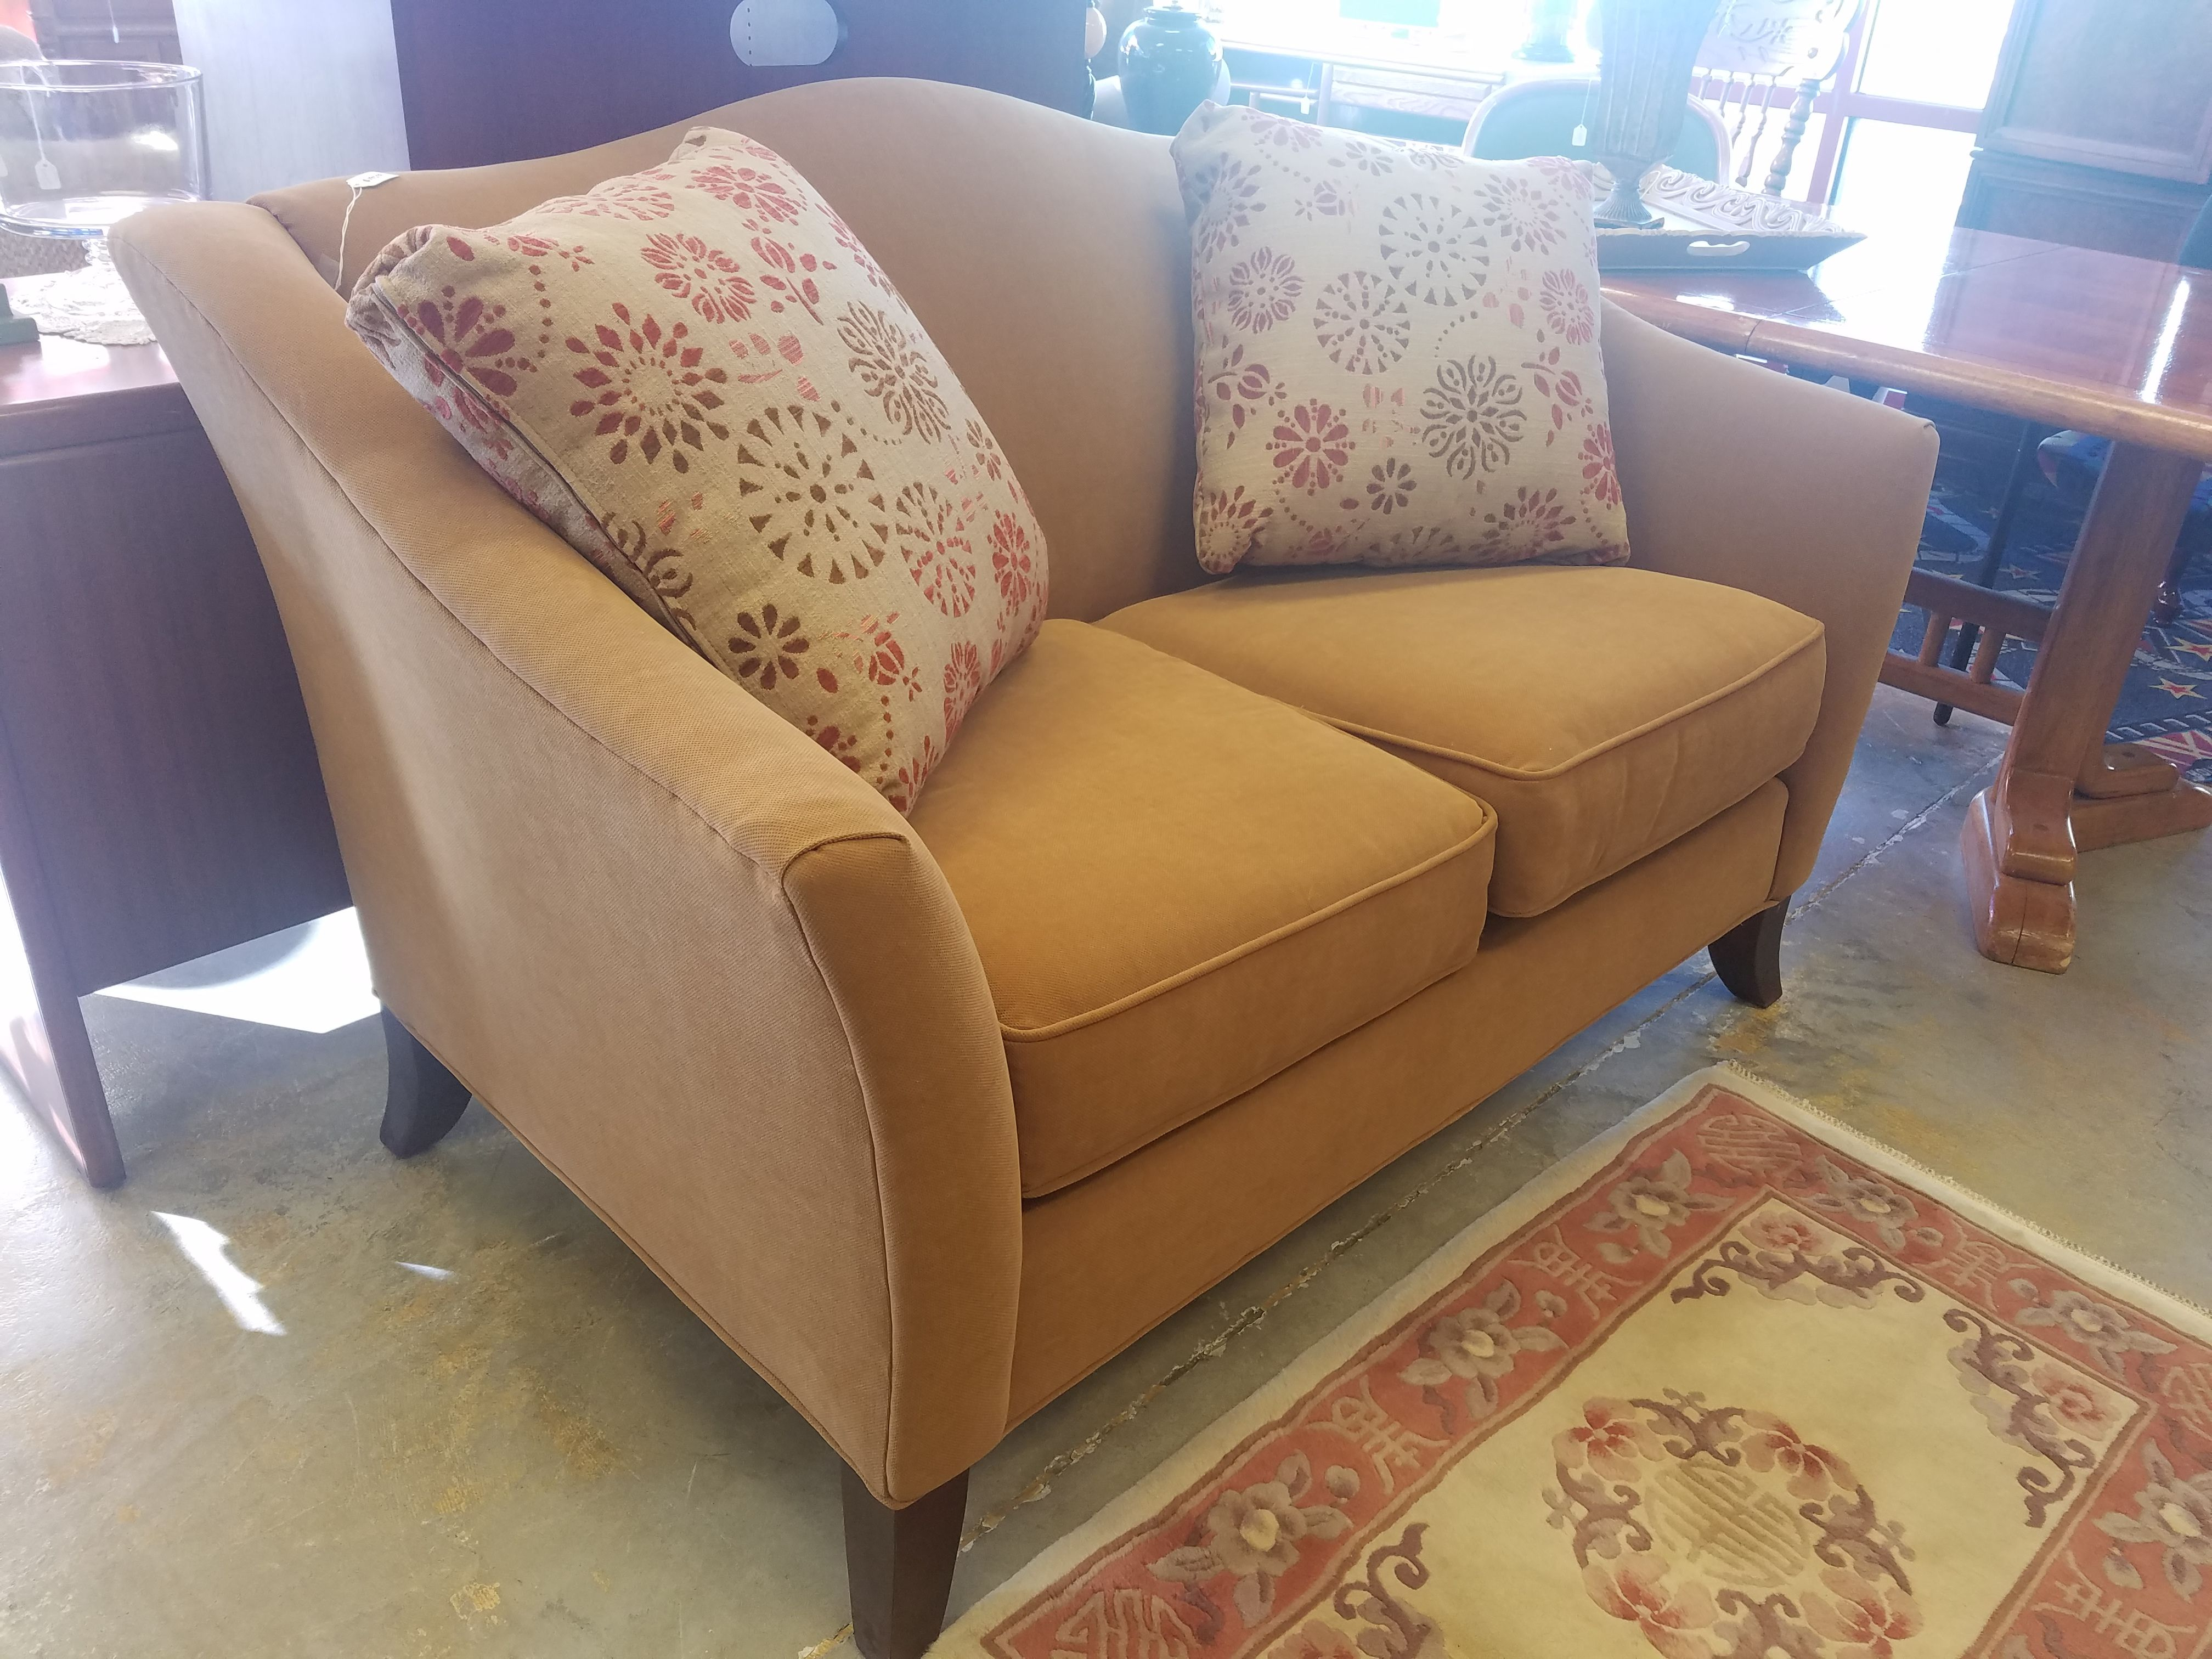 size ks design fresh of unique photo furniture ononsignment incredible stores online great in wichita used full ideas